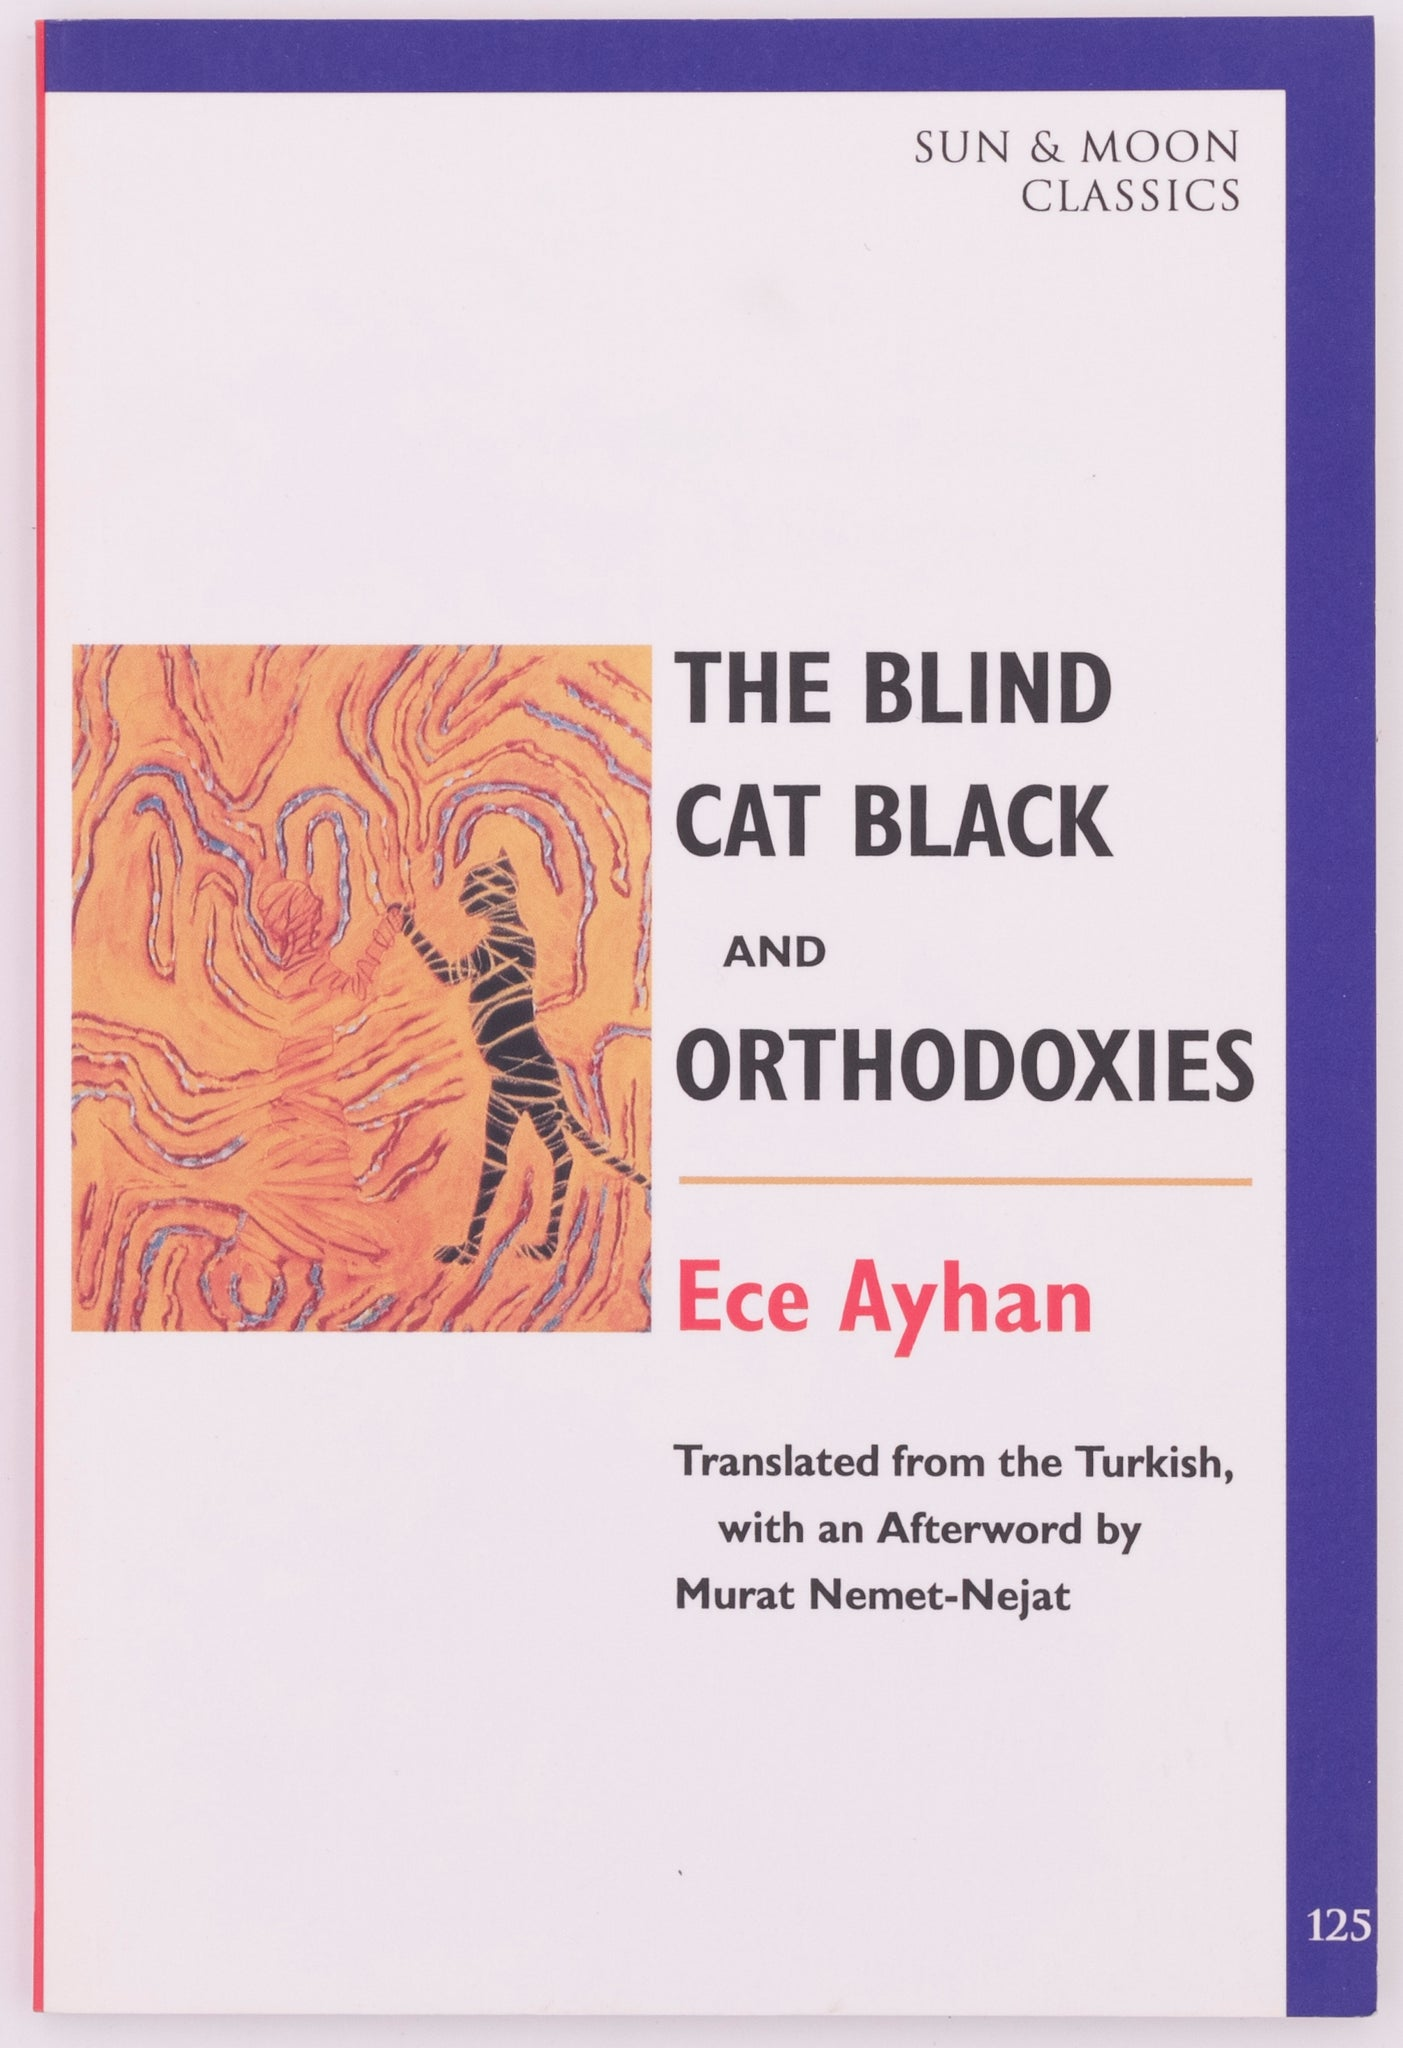 The Blind Cat Black and the Orthodoxies